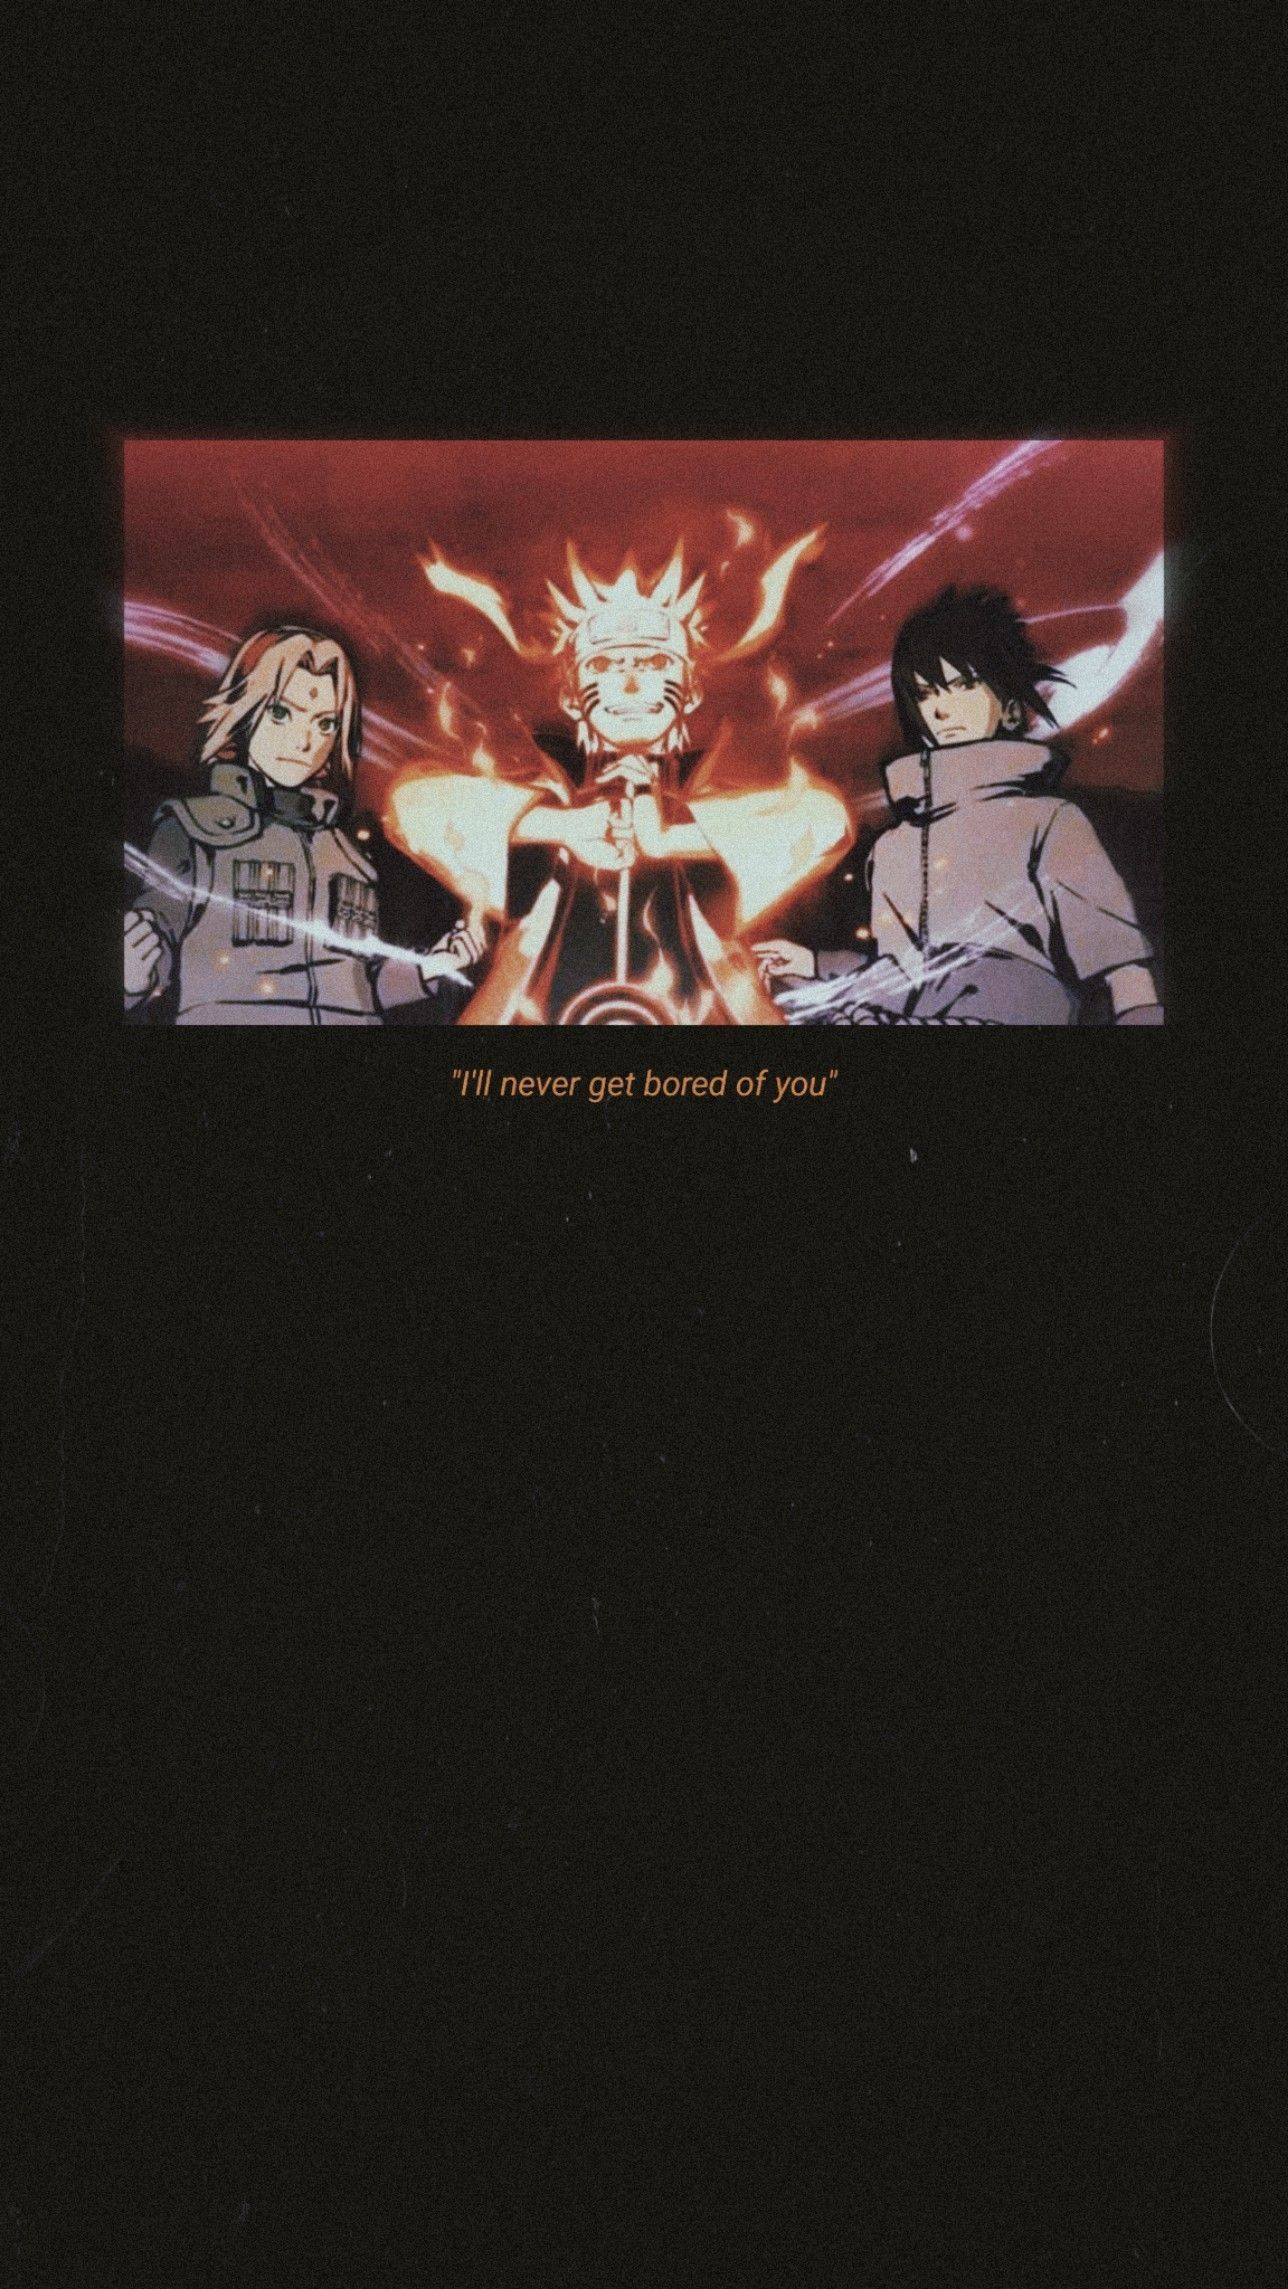 Boruto and Naruto Apple iPhone 7 hd wallpapers available